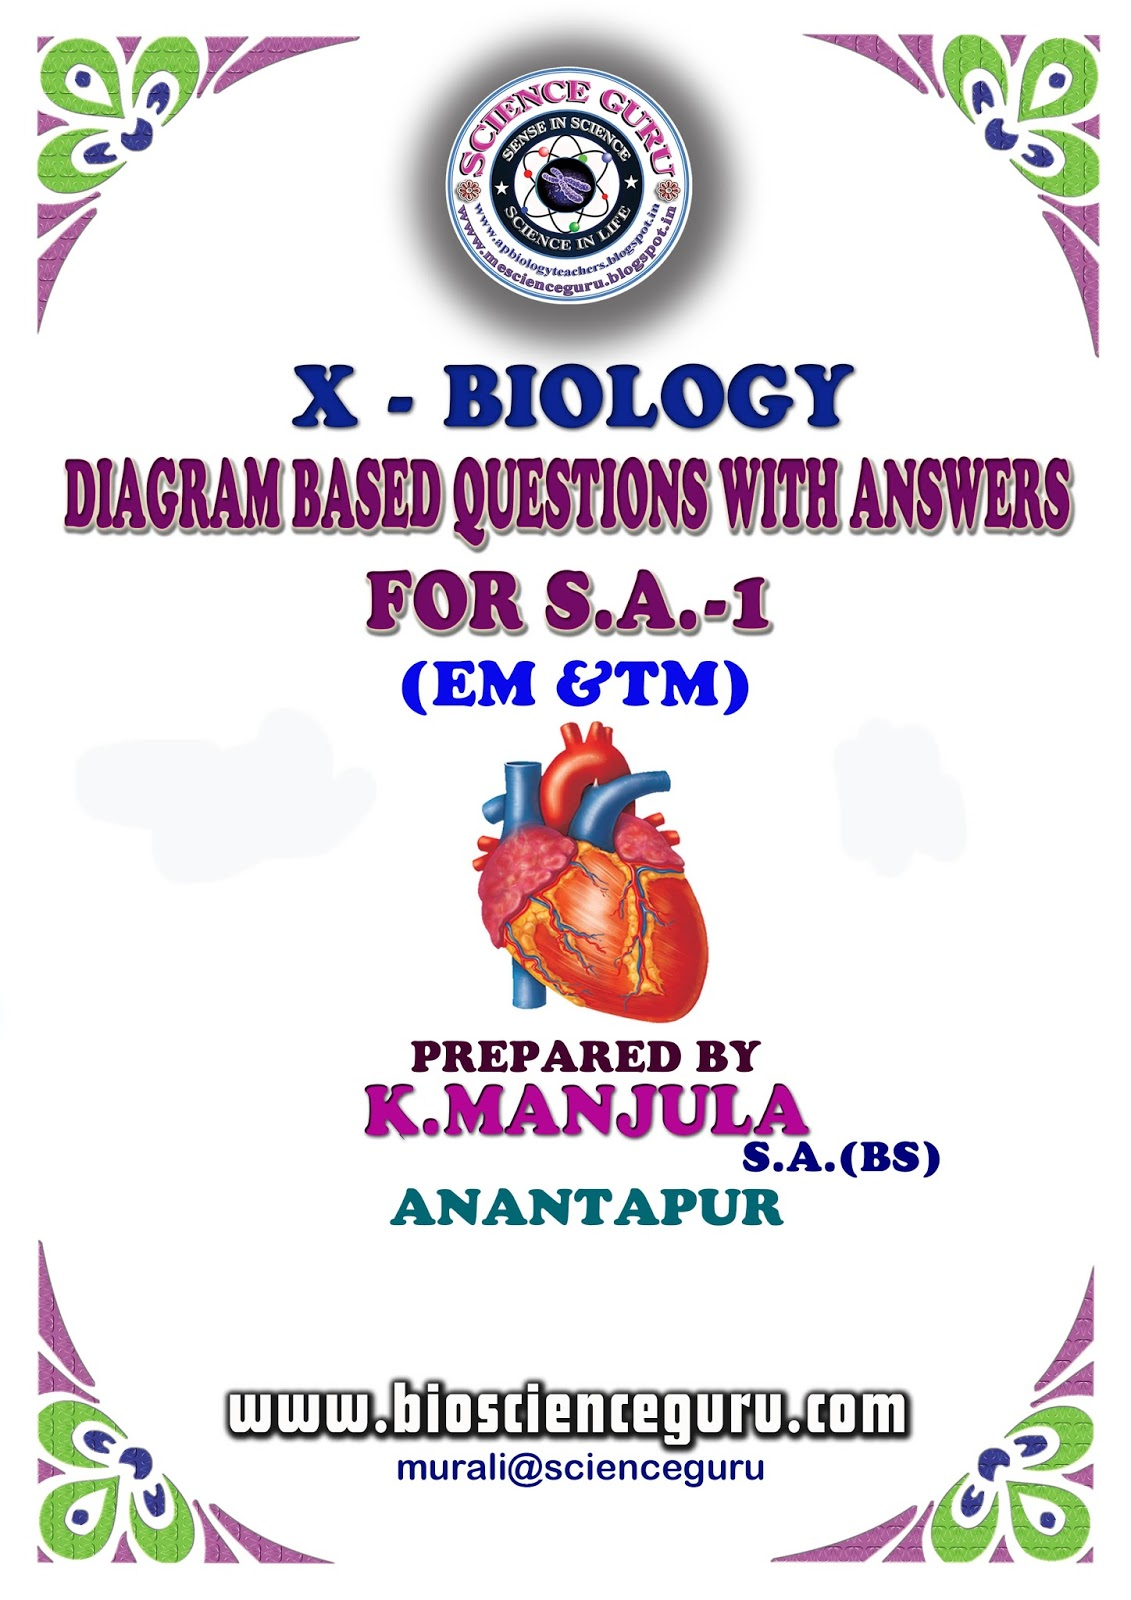 10th class diagram based questions and answers for sa 1 this booklet of diagram based questions with answers provide the questions under third and fifth competency of summative examination ccuart Gallery